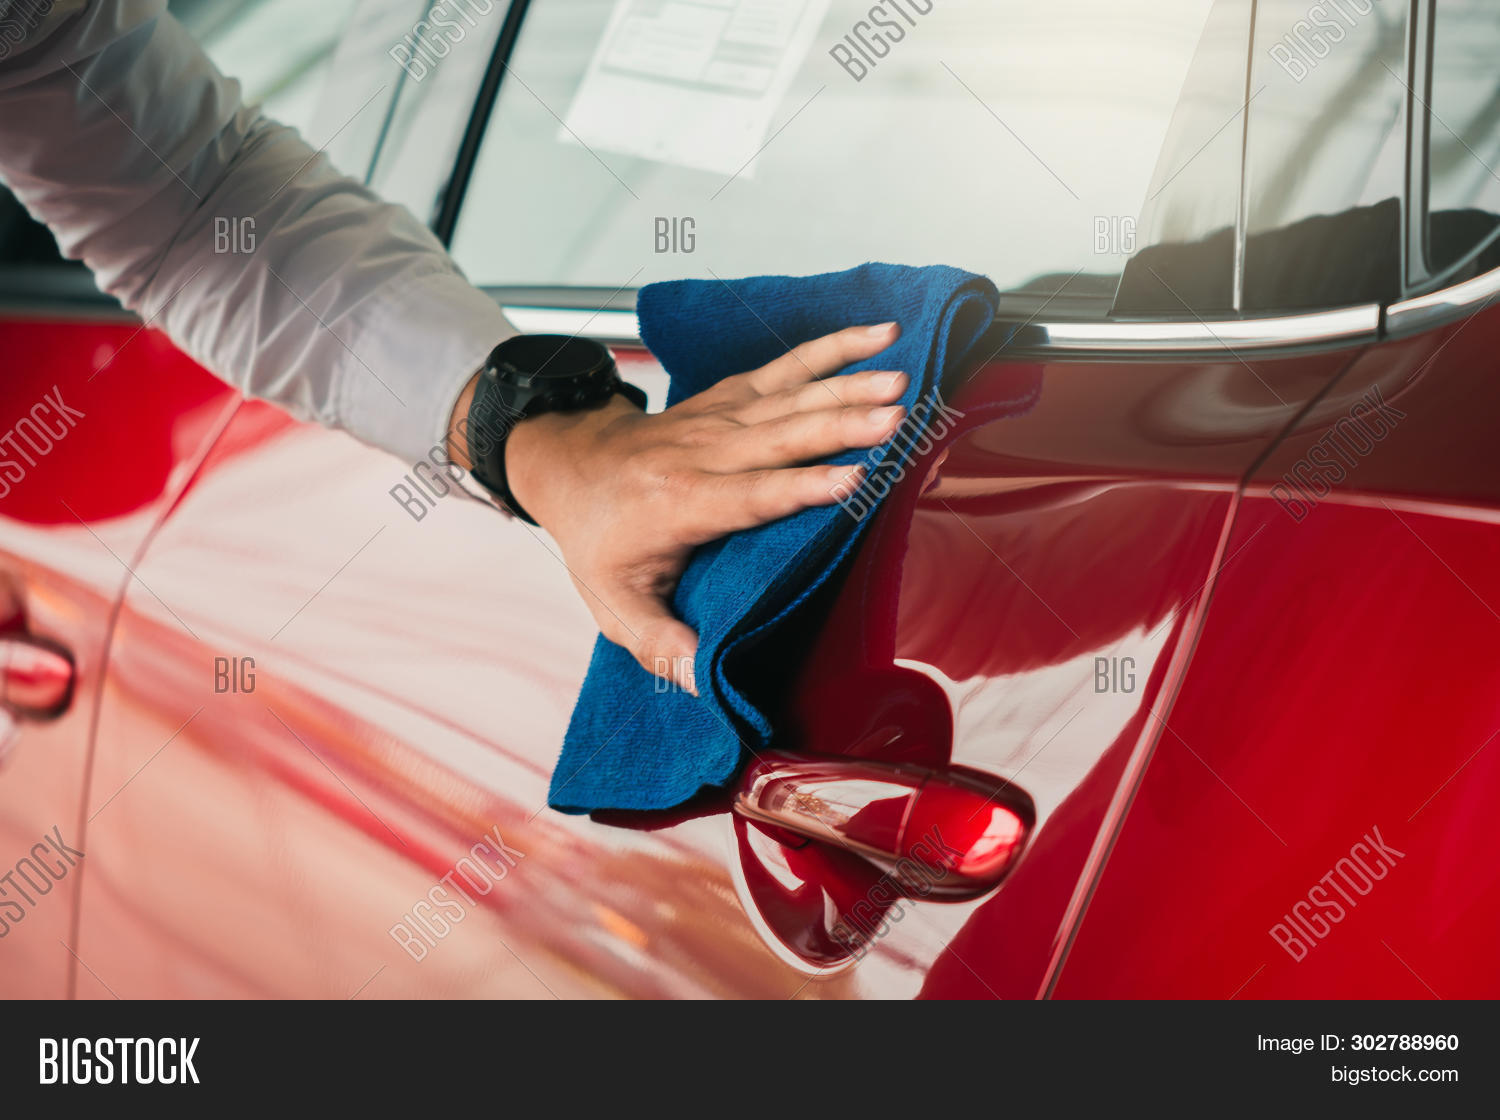 adult,auto,automobile,automotive,car,care,career,clean,cleaner,cleaning,cleansing,closeup,cloth,confidence,dealership,detailing,driver,drying,dust,duster,garage,inside,job,maintenance,men,microfiber,motor,occupation,people,person,polish,polishing,red,remove,service,shine,shiny,technology,transport,transportation,valeting,vehicle,vocation,wash,washing,wipe,work,worker